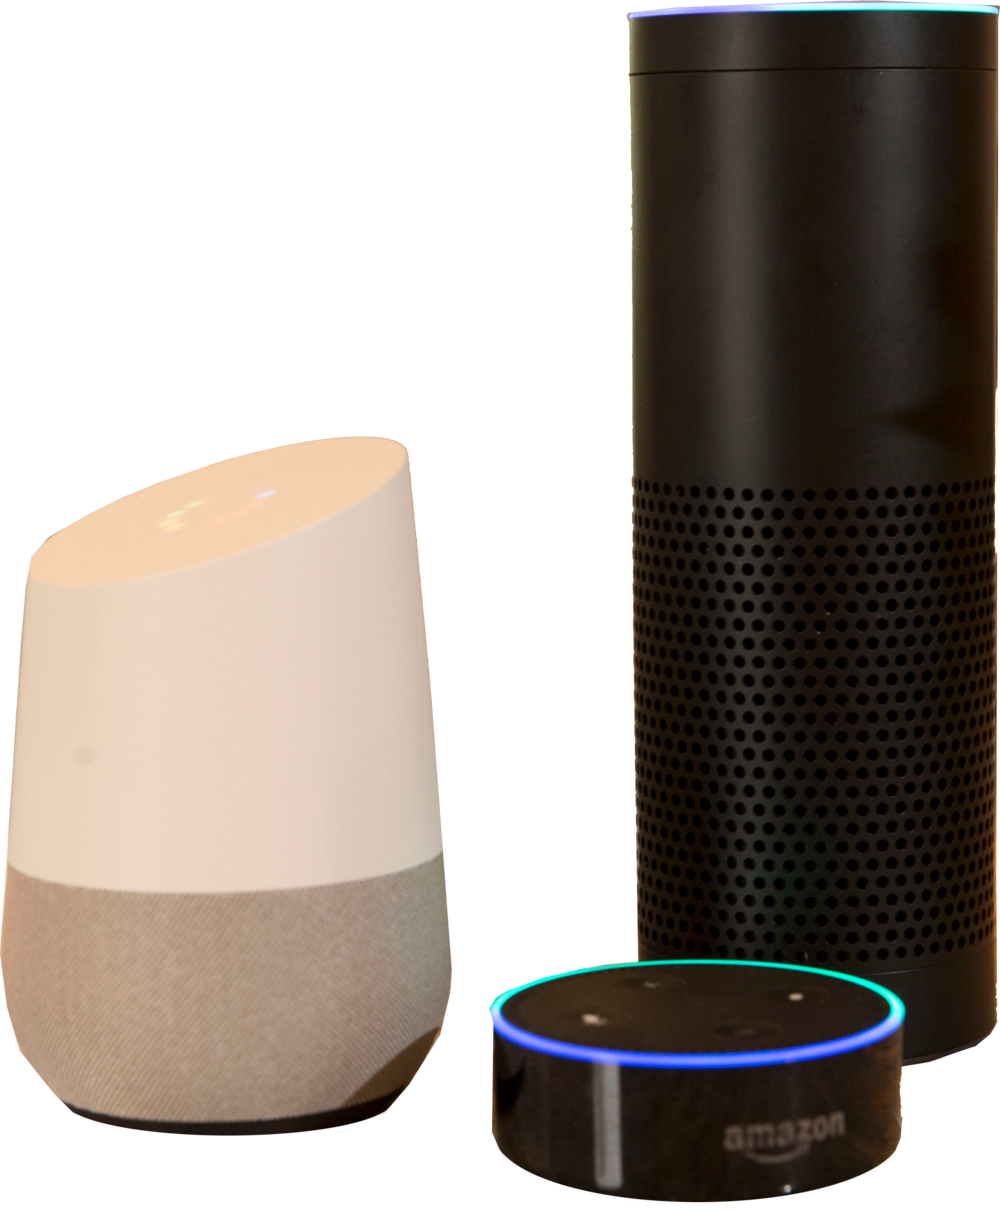 Voiceter Pro is proud to be an Amazon Alexa preferred developer.